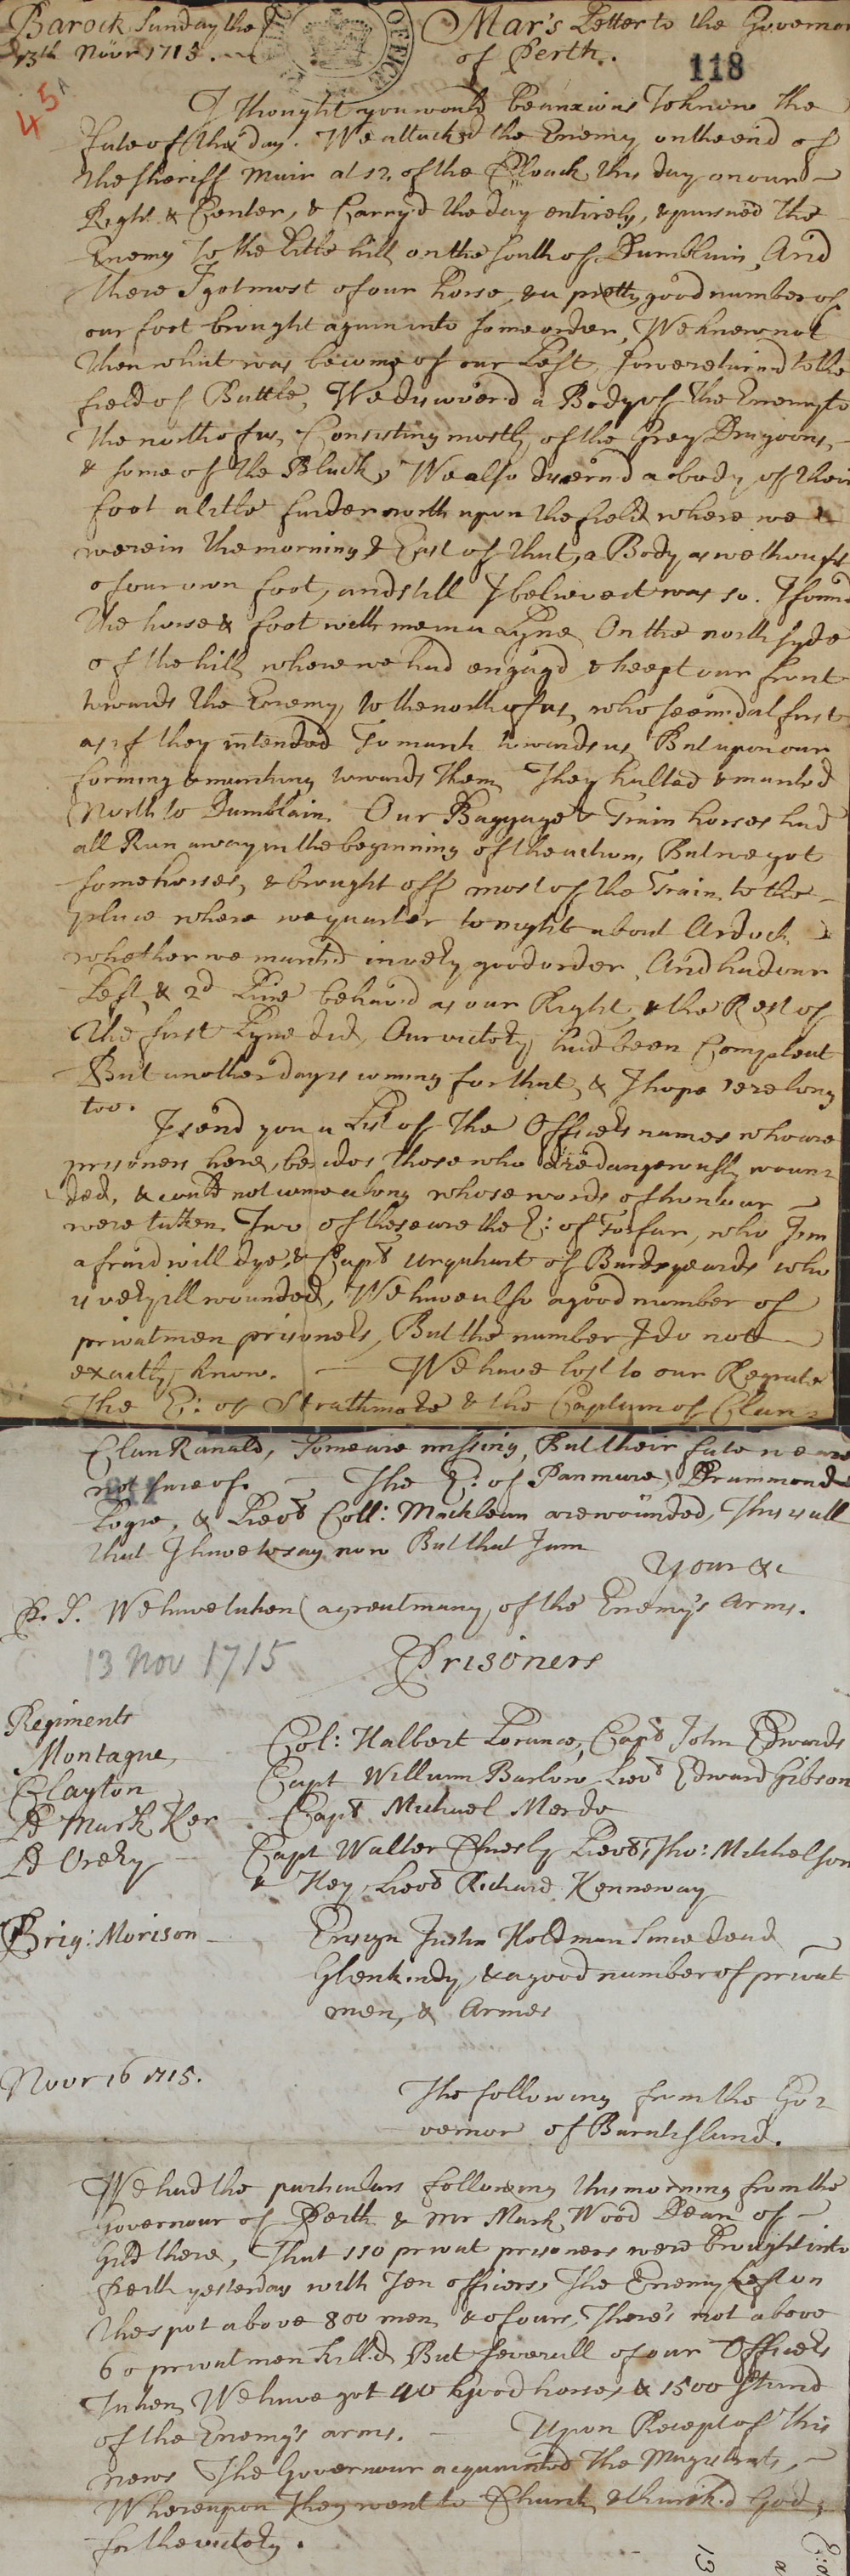 Letter from the Earl of Mar to the Governor of Perth on the battle of Sheriffmuir, 13 November, 1715 (SP 54/10/45A)